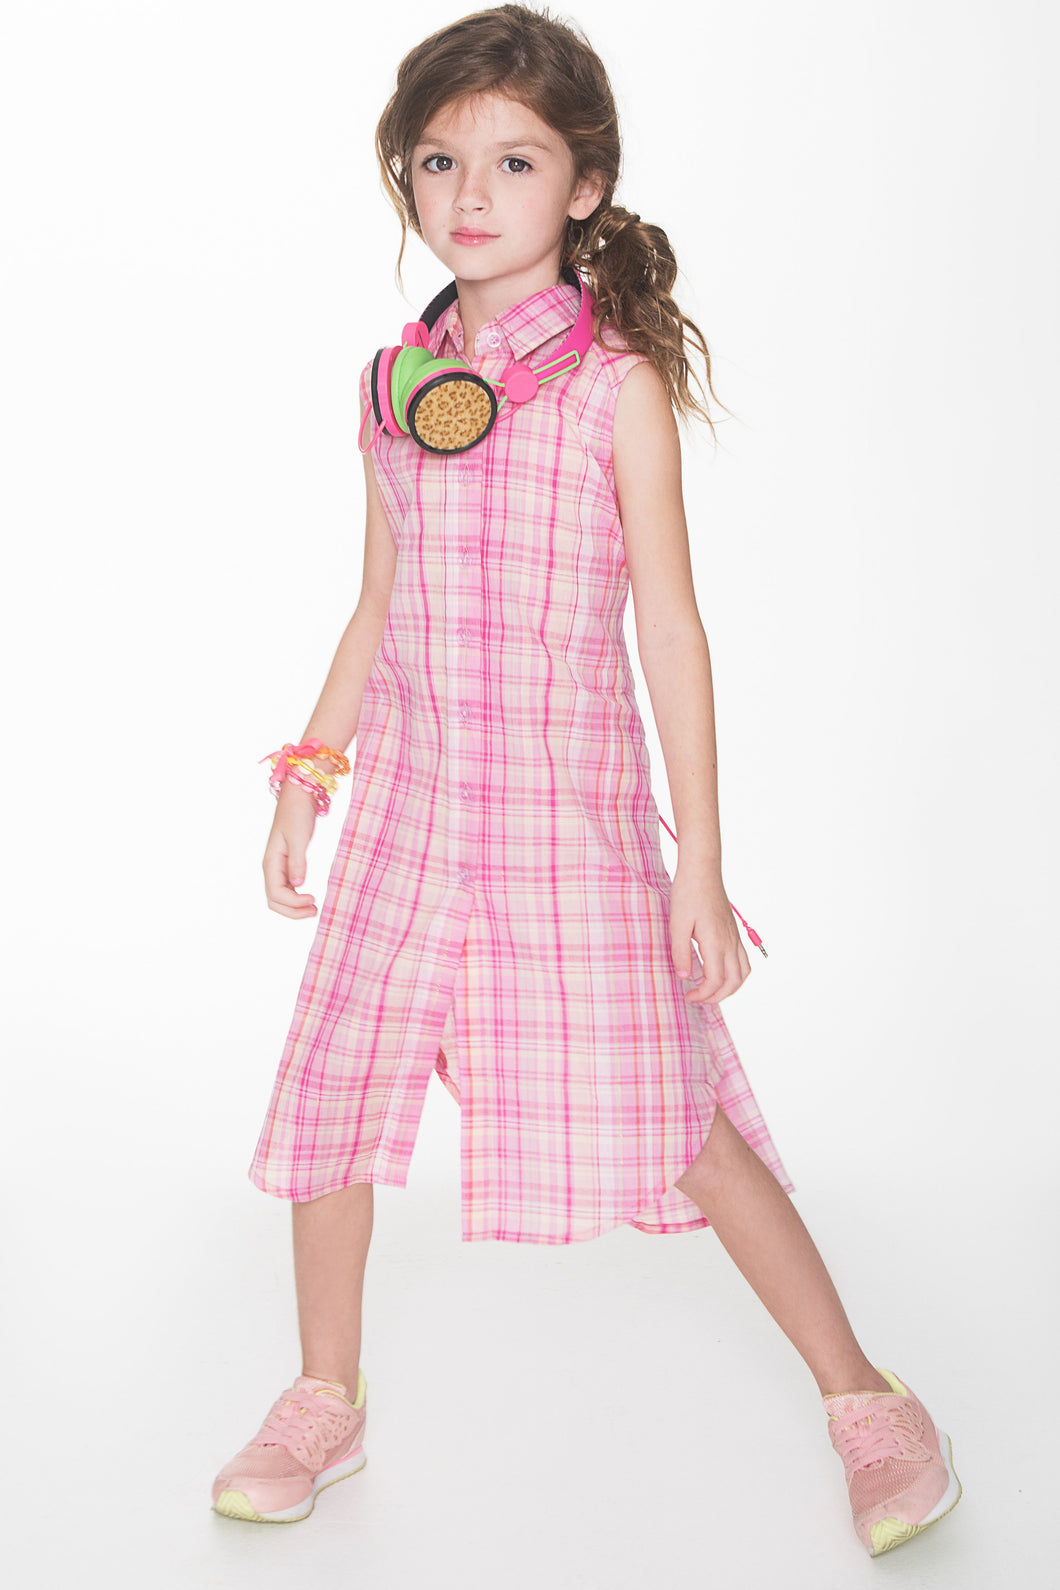 Pink Checks Lurex Shirt Dress - Kids Clothing, Dress - Girls Dress, Yo Baby Online - Yo Baby